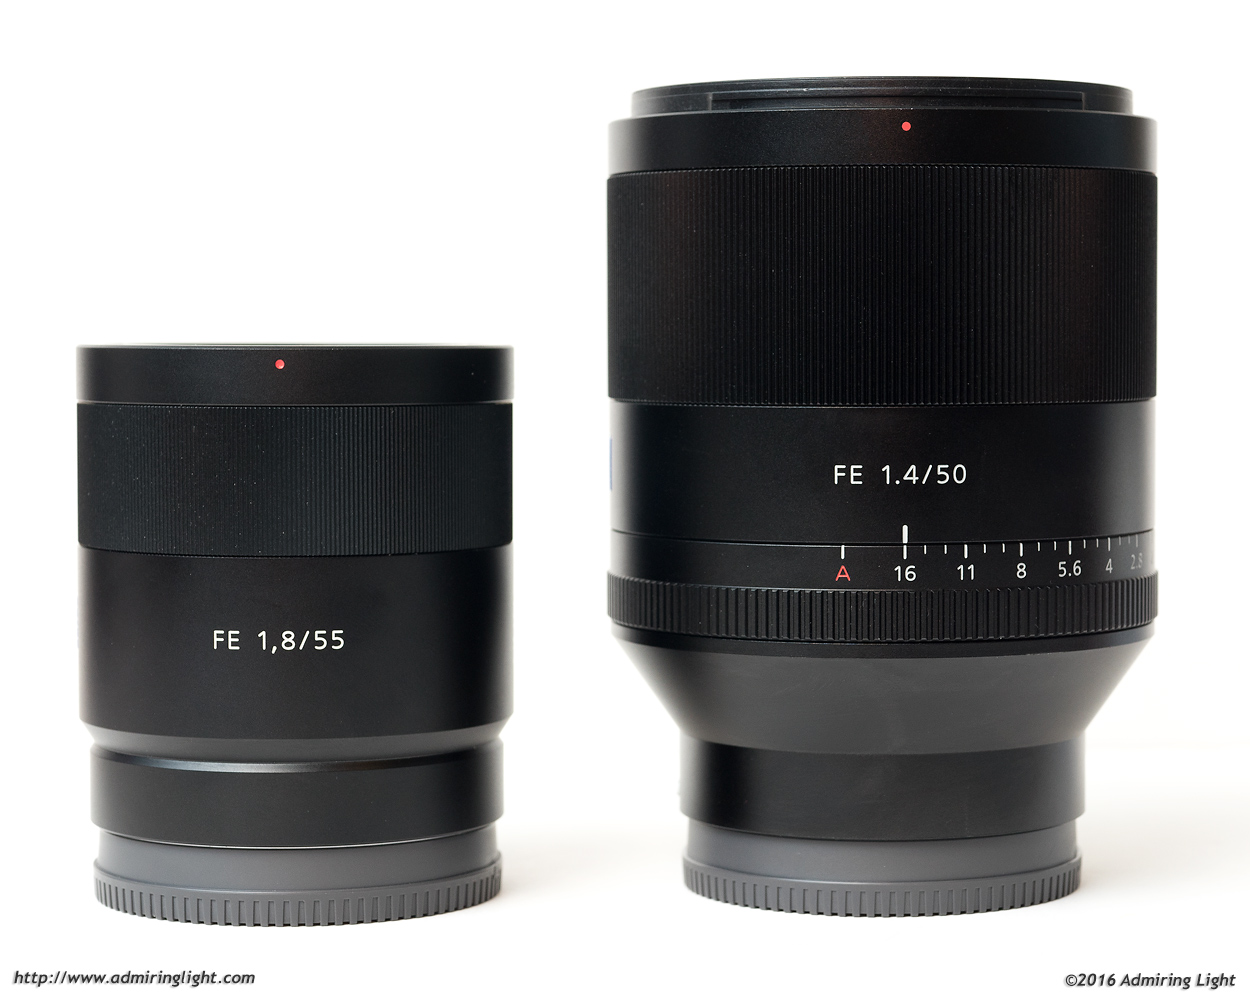 FE 55mm f/1.8 and FE 50mm f/1.4